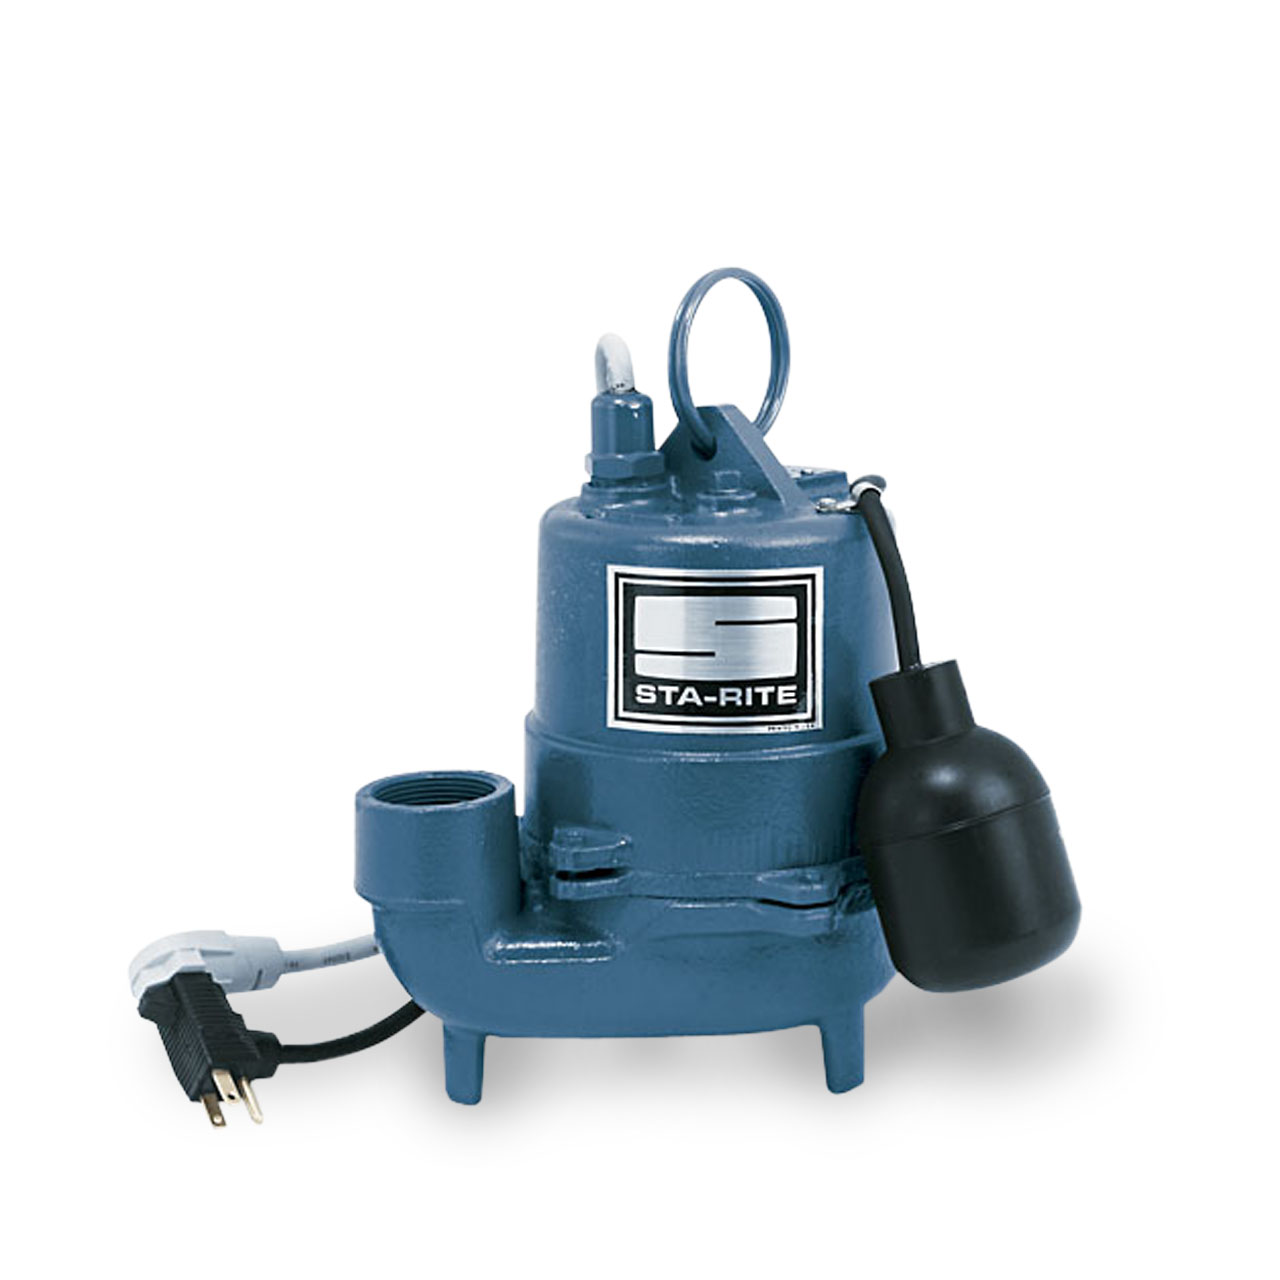 Sta rite sta rite ht333120t submersible high temperature for Sta rite well pump motor